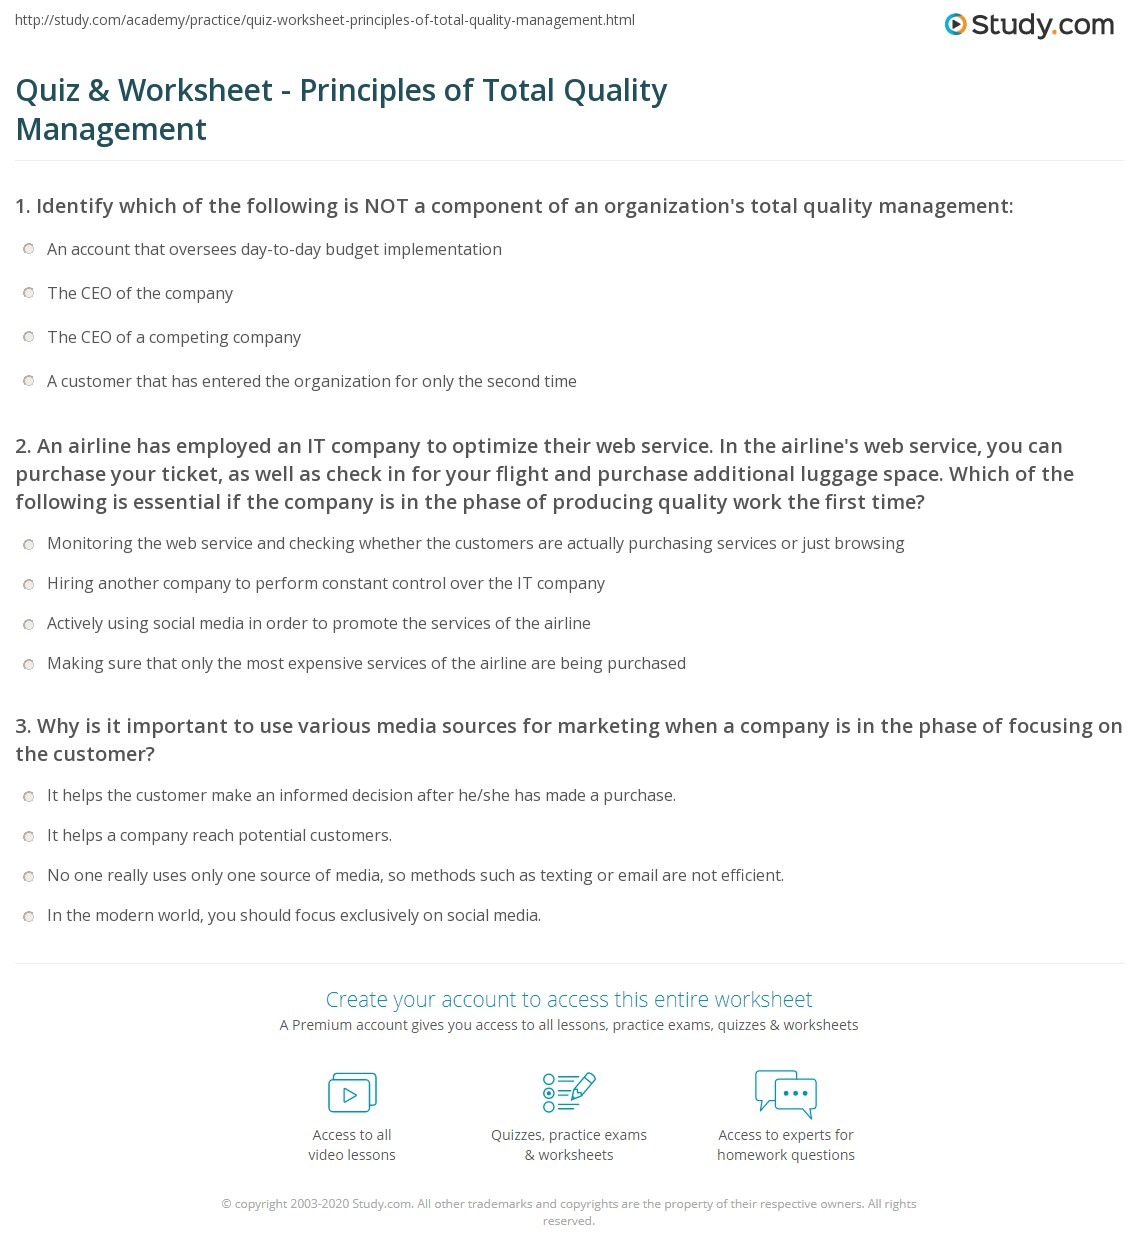 quiz worksheet principles of total quality management com 1 an airline has employed an it company to optimise their web service in the airline s web service you can purchase your ticket as well as check in for